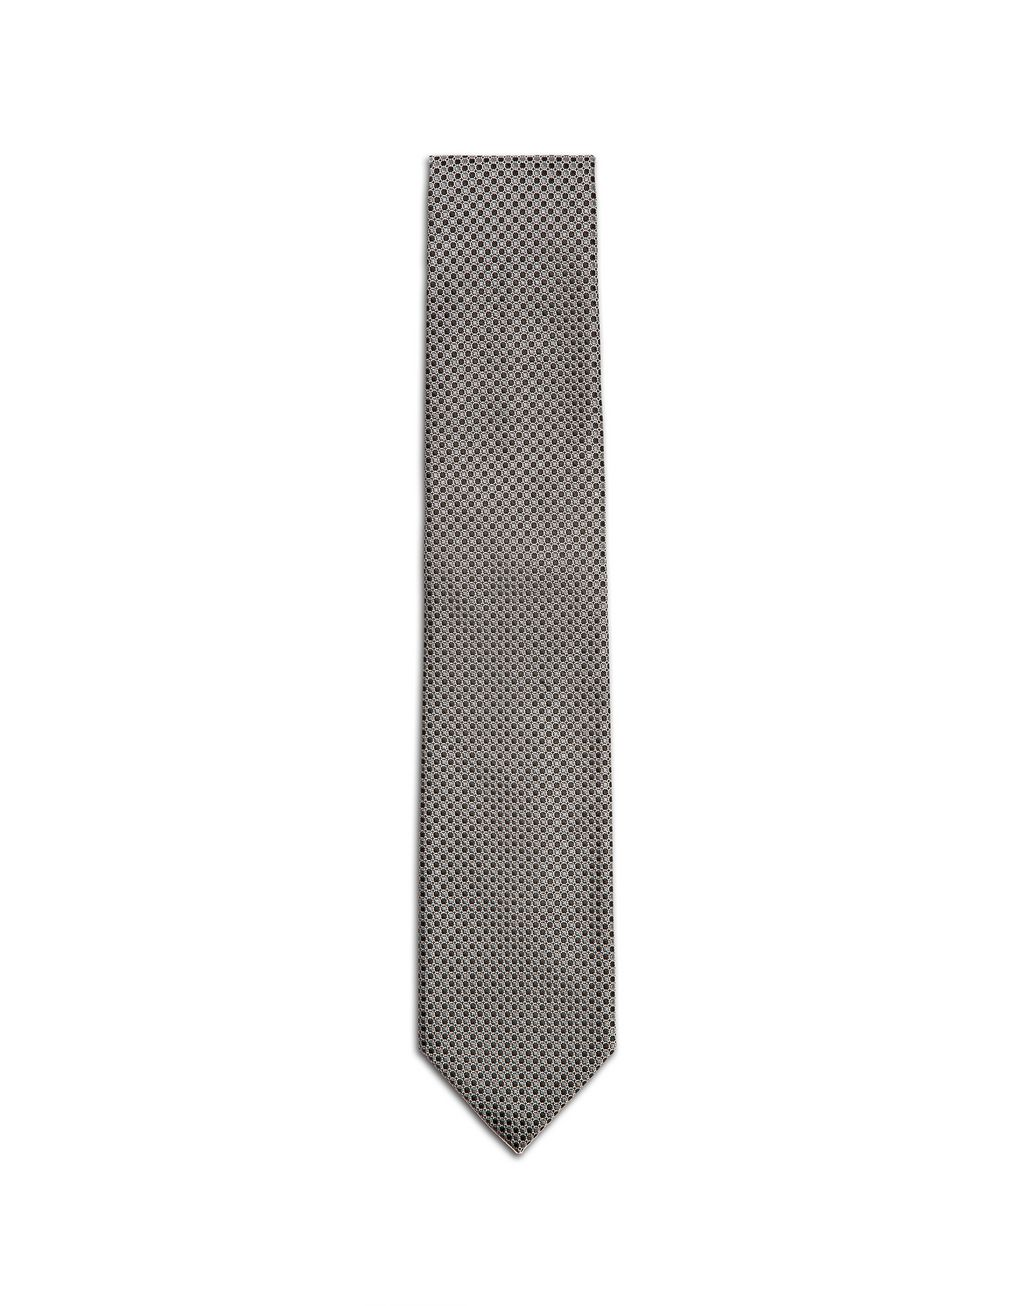 BRIONI Black and Grey Micro-Design Tie Tie & Pocket Square Man f